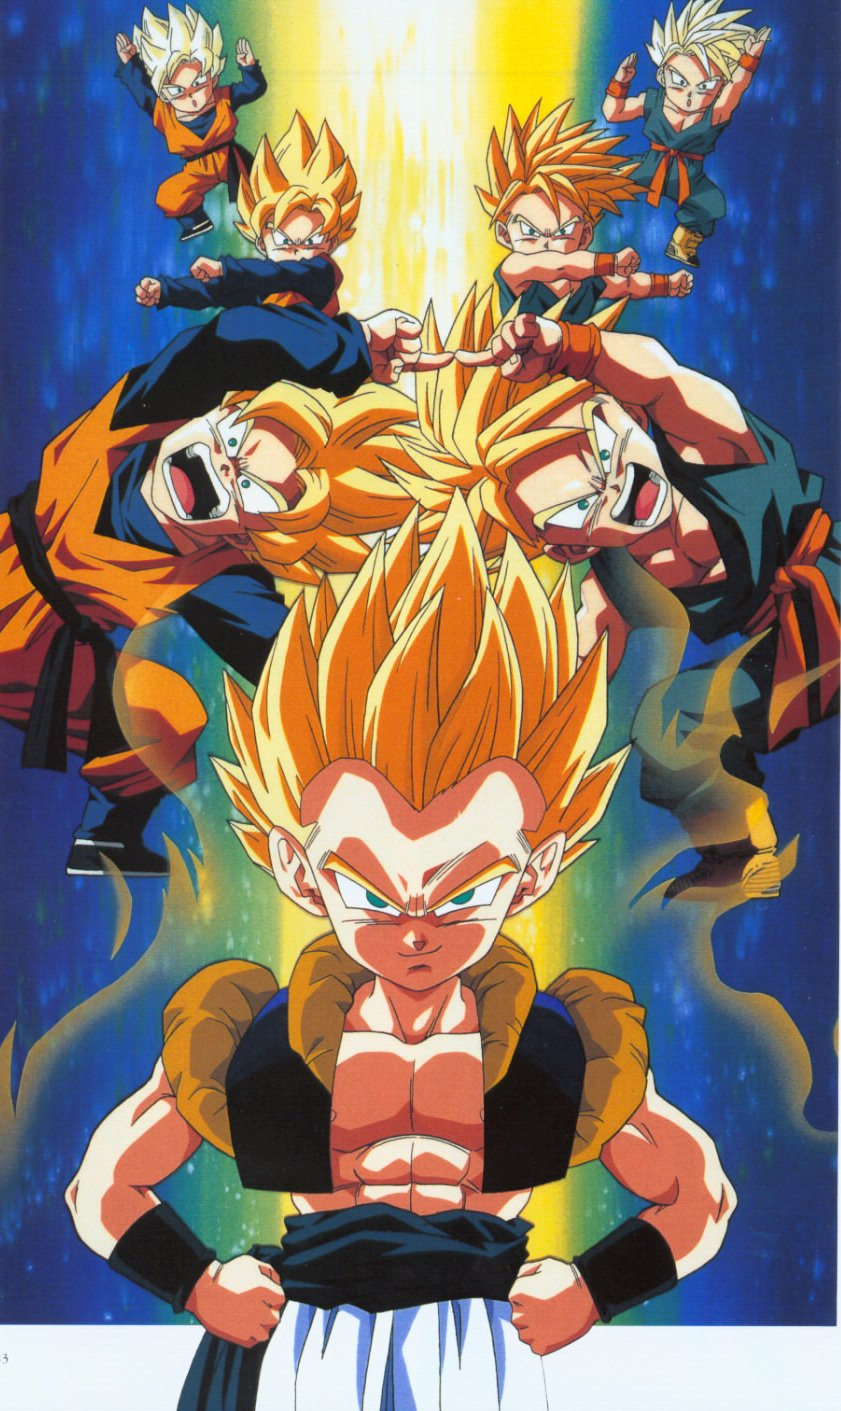 dragon ball z wallpapers gotenks super saiyan. Black Bedroom Furniture Sets. Home Design Ideas